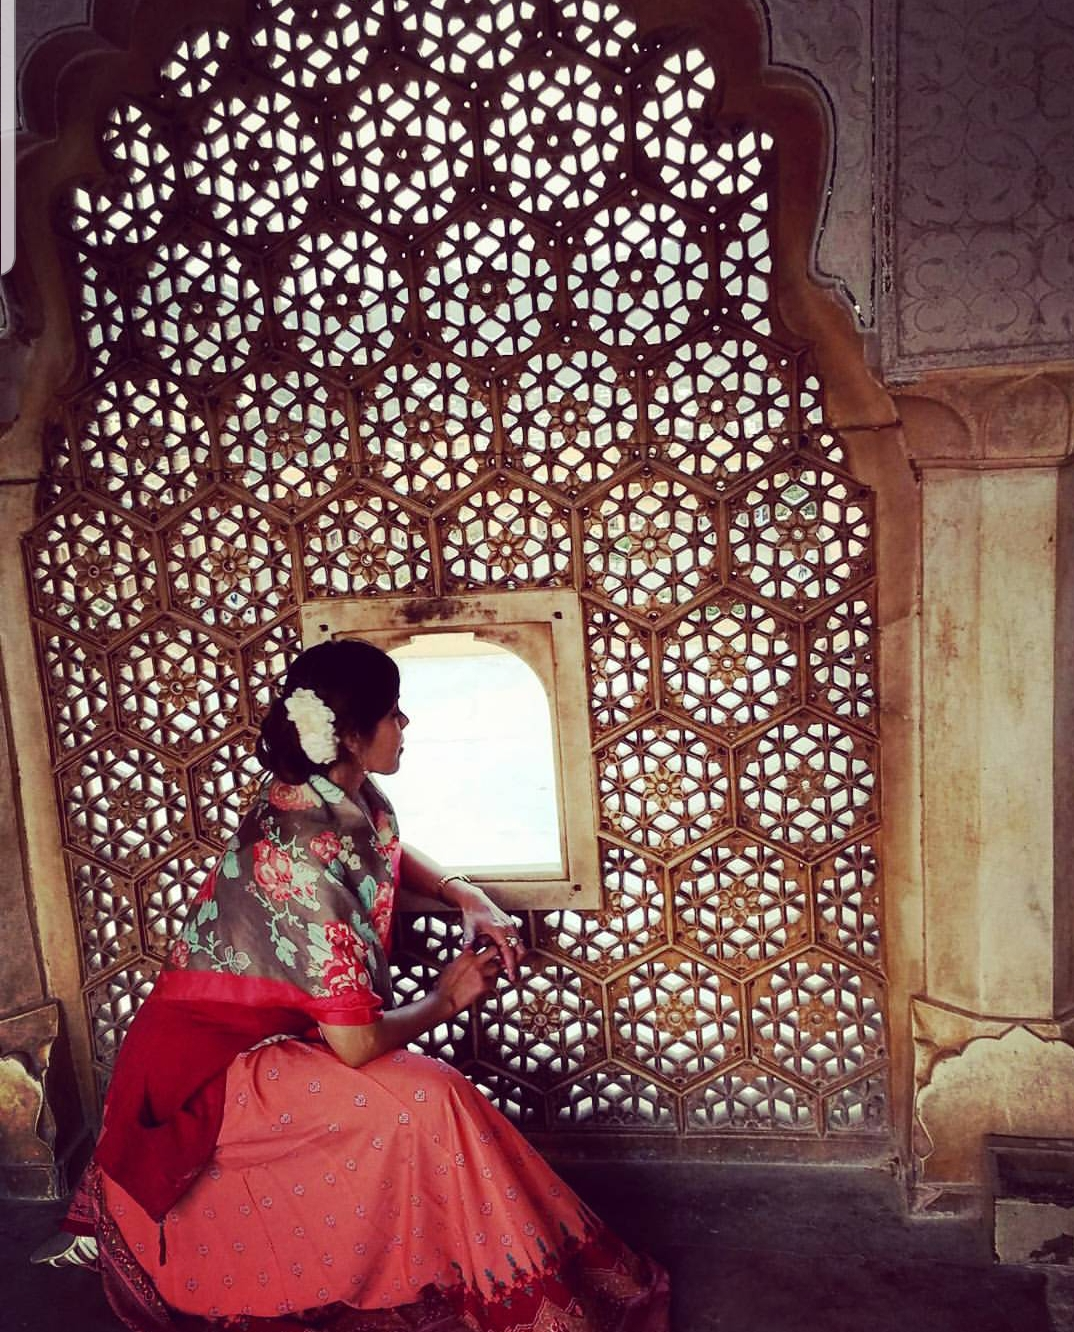 AMBER FORT PALACE, JAIPUR. INDIA. 2018 - I am seen in the exact same spot where Mughal emperor Akbar's wife Jodhaa was portrayed as gazing down into the courtyards in the 2008 Bollywood blockbuster Jodhaa Akbar, starring Aishwarya Rai and Hrithik Roshan. This picture was taken during a tour in Jaipur amid the five-day Jaipur Literature Festival extravaganza that I was invited to, in 2018.KEYWORDS: Jaipur Lit Fest, ZEE JLF, Jaipur Literature Festival, Jaipur, Authors, Nish Amarnath, HarperCollins, Amber Fort Palace, Bollywood blockbusters, Jodhaa Akbar, Mughal, Hrithik Roshan, Aishwarya Rai.